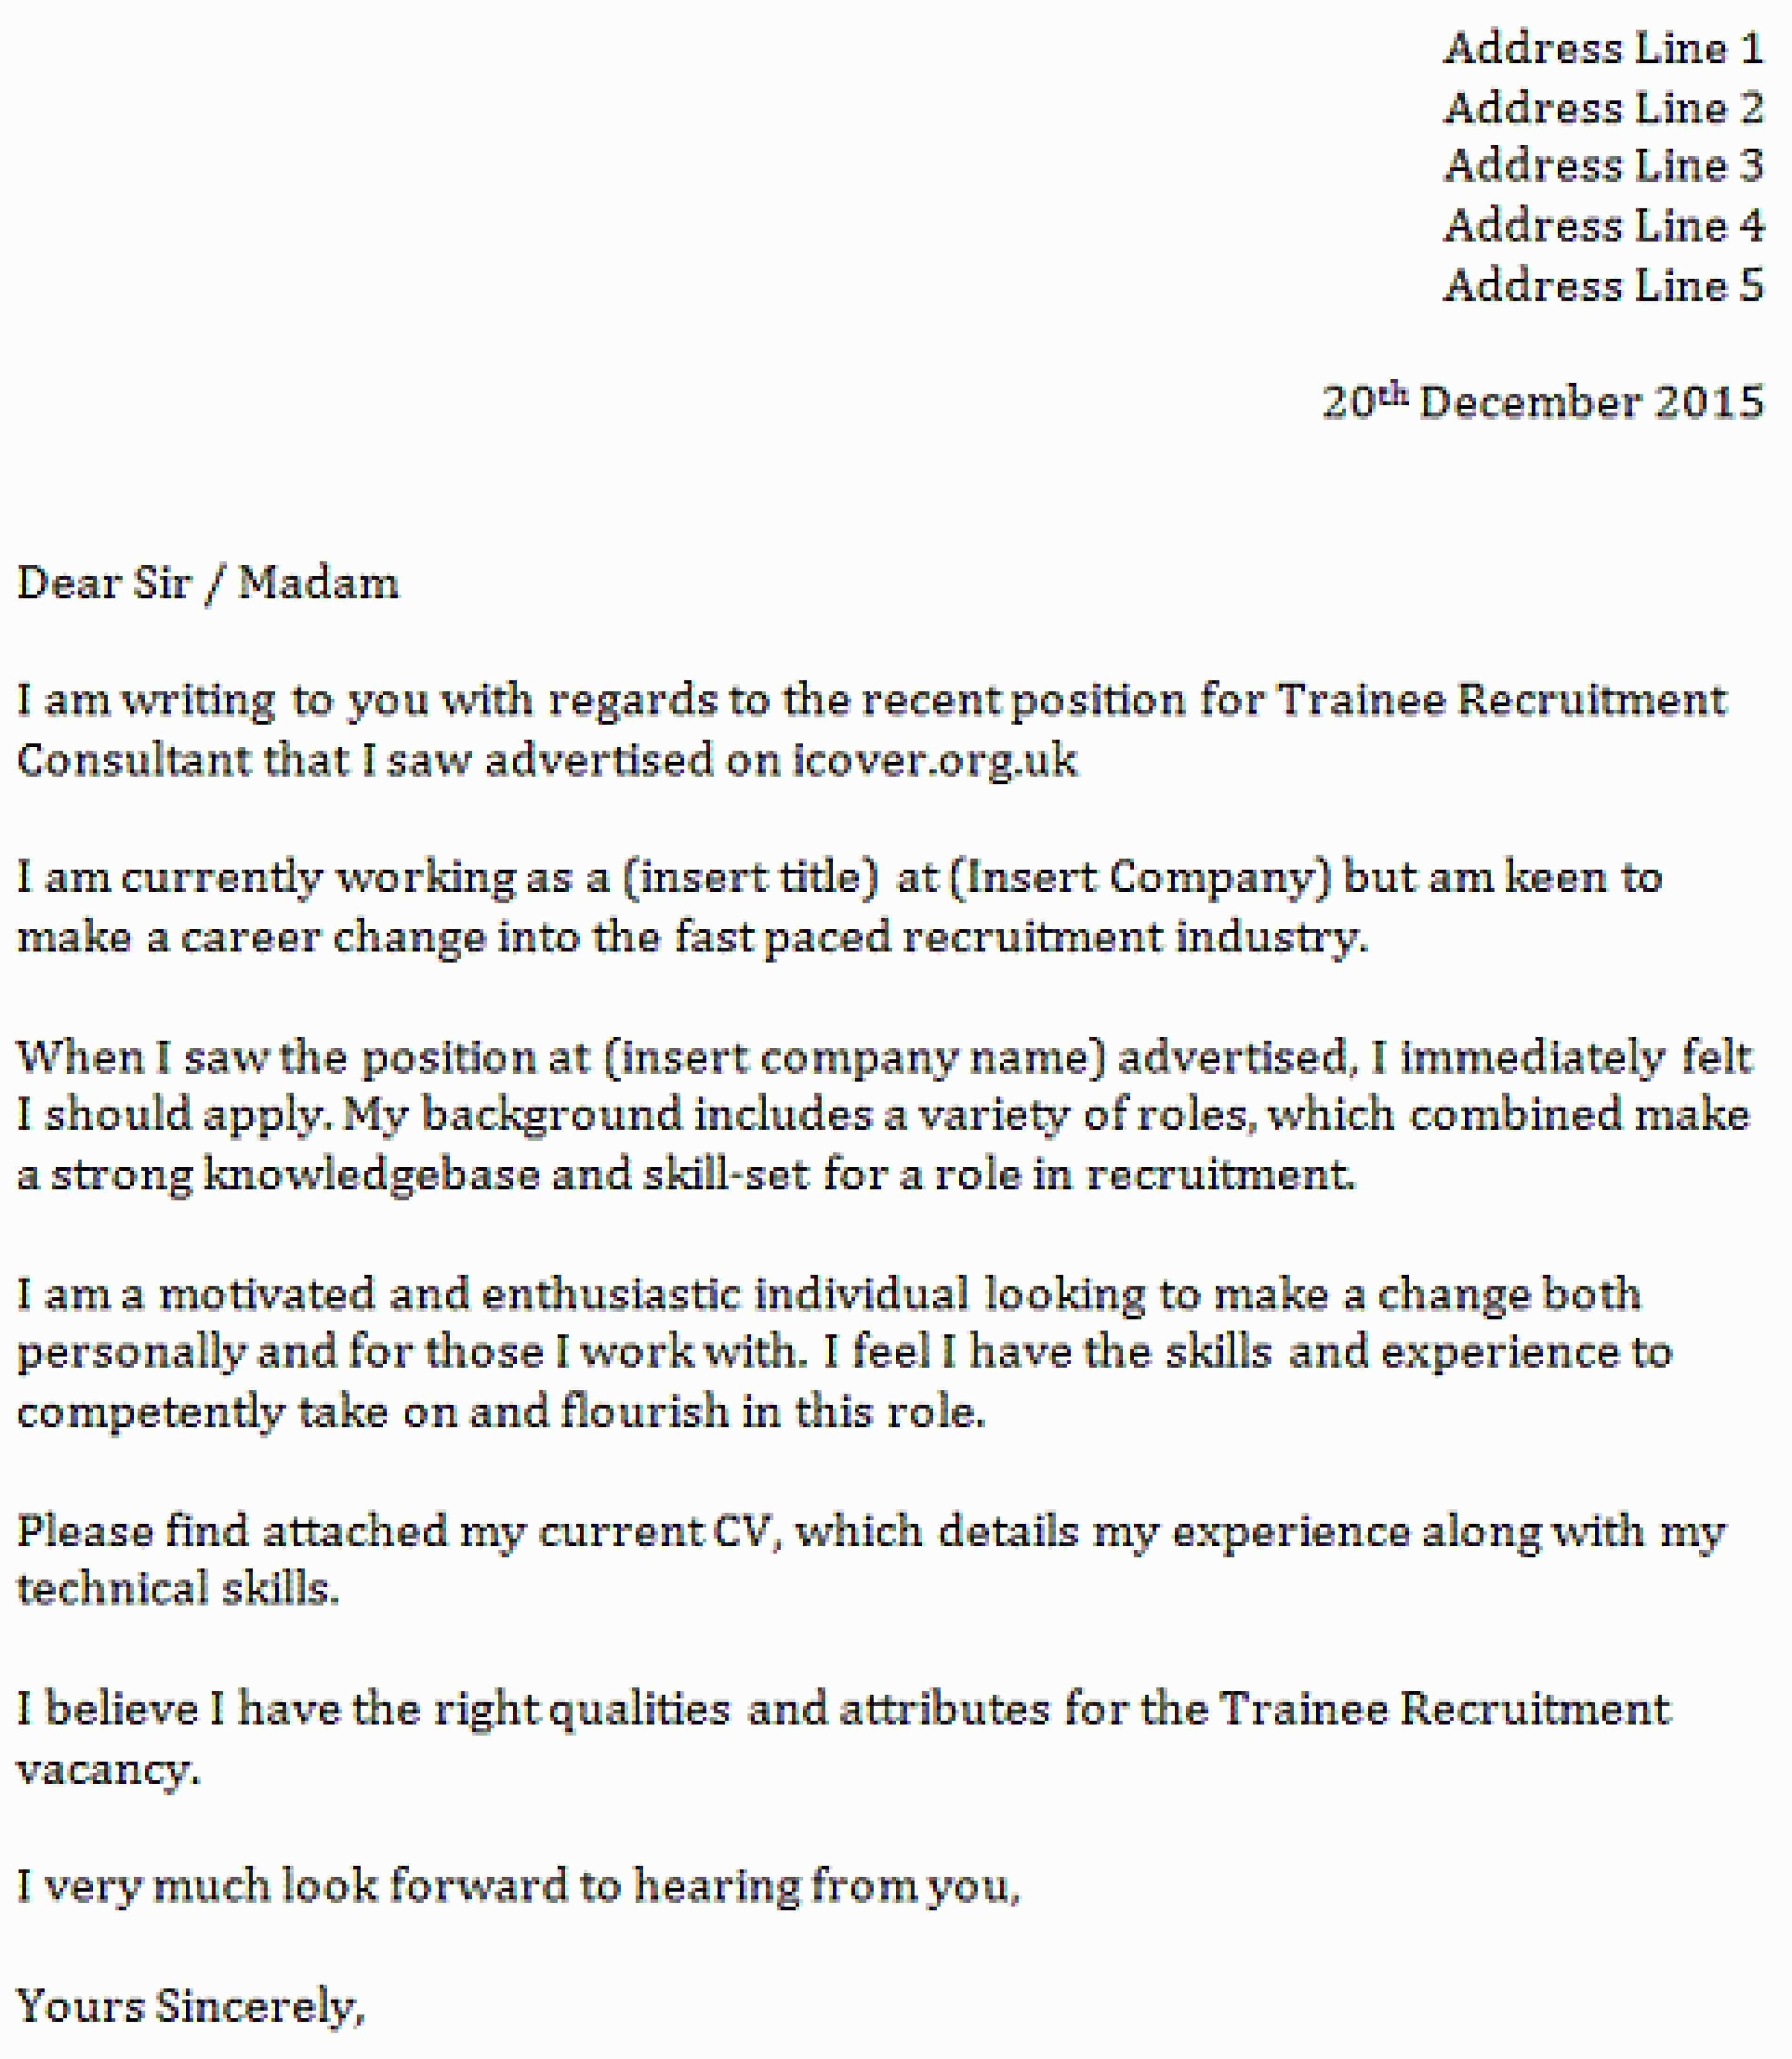 Email Cover Letter Template Uk Resume Format Job Cover Letter Job Letter Writing A Cover Letter